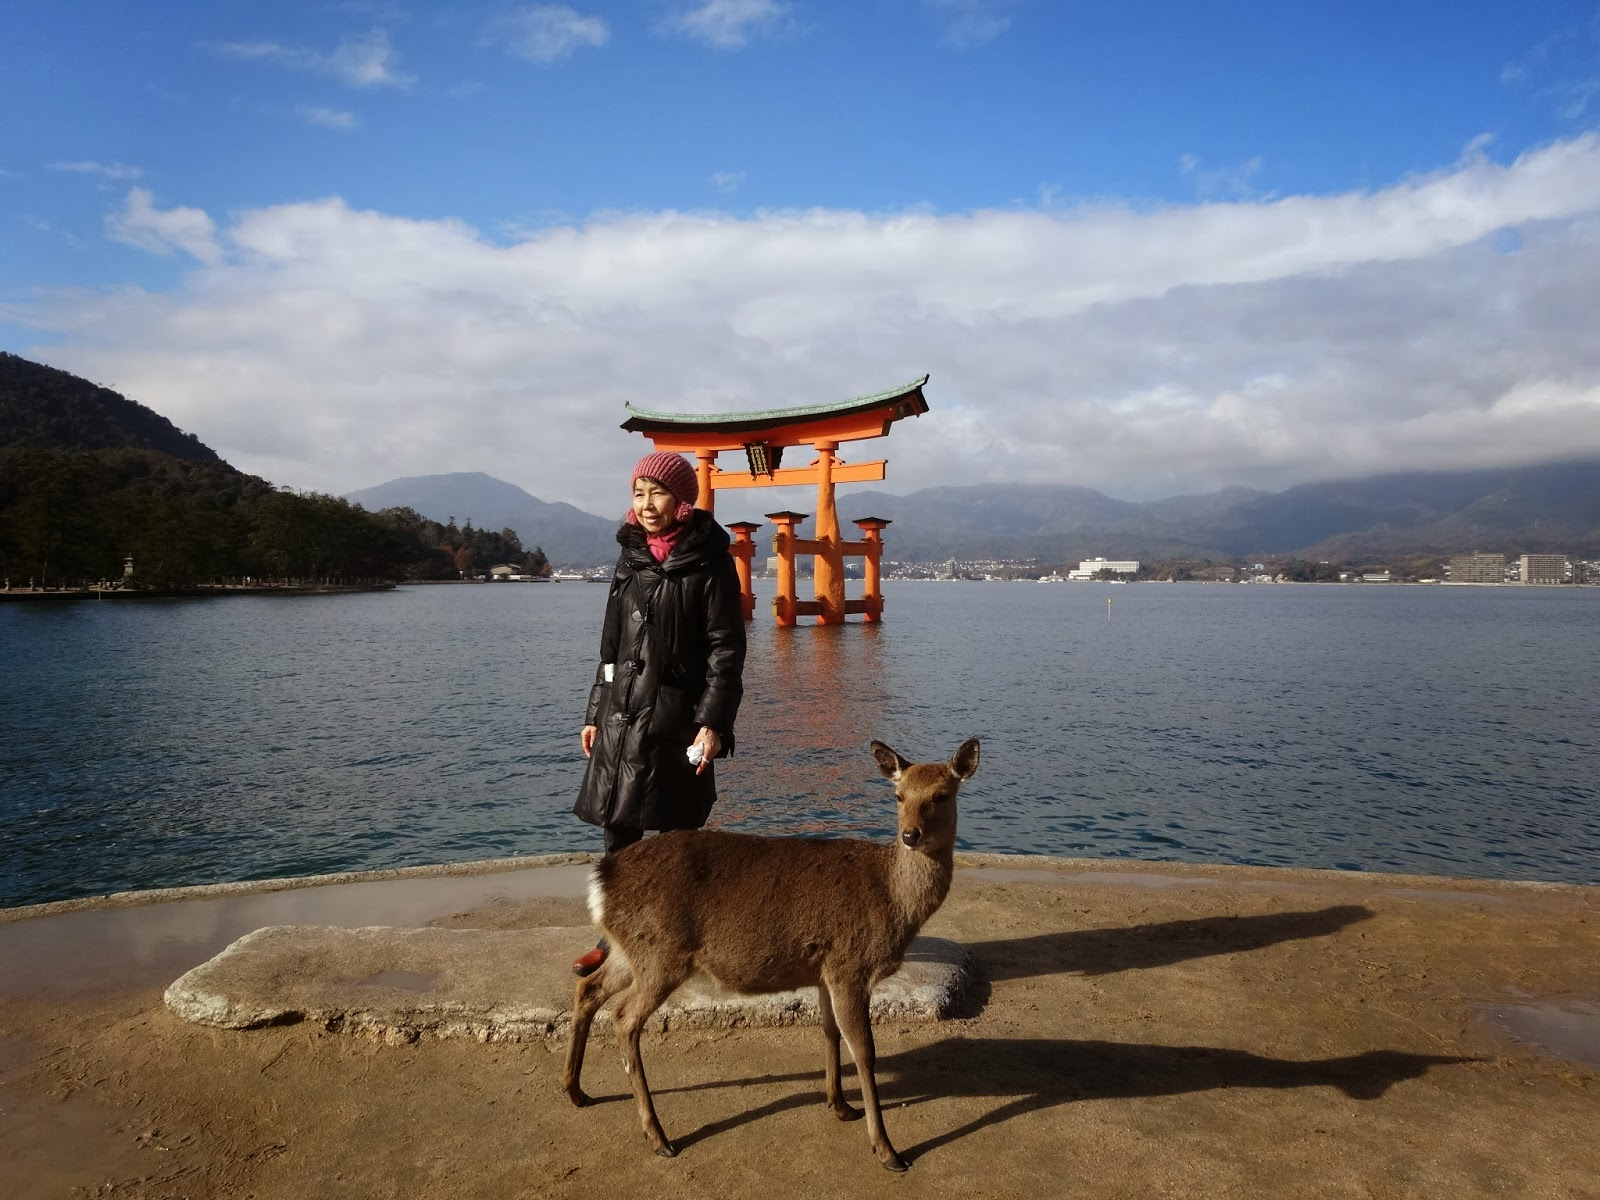 Torii gates on a clear day with a deer